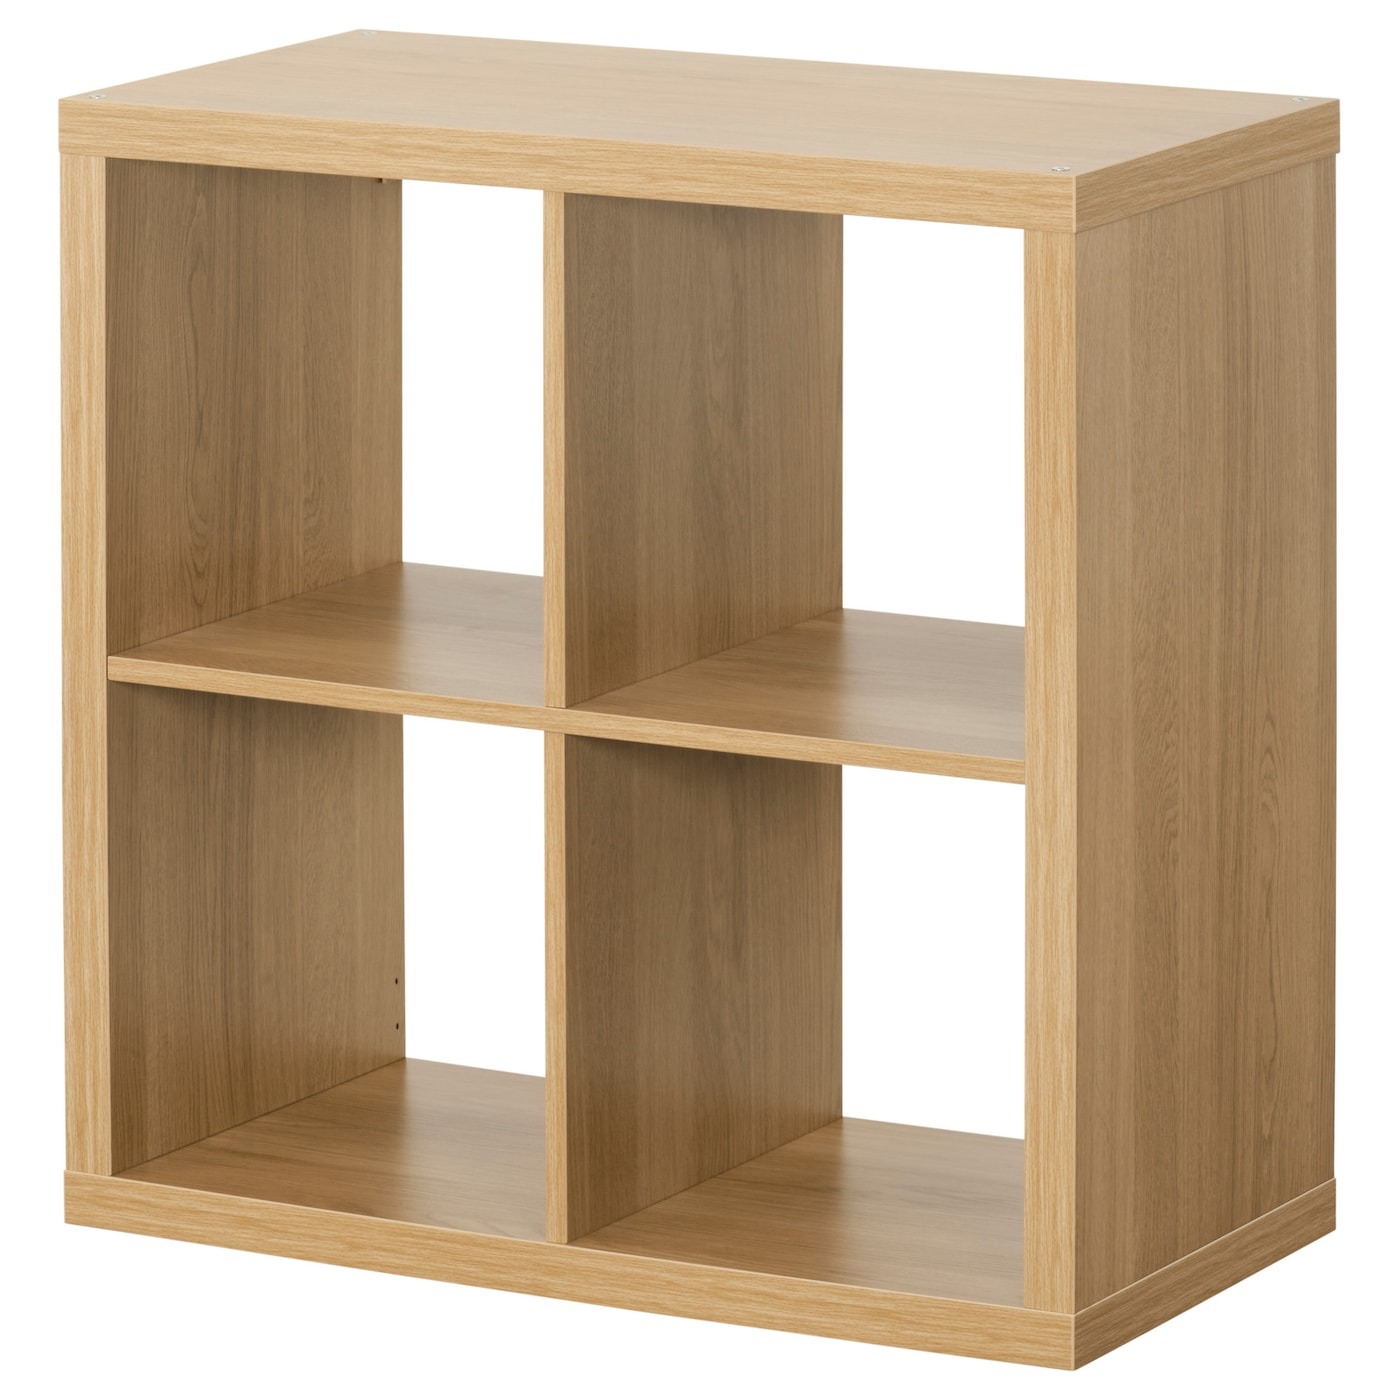 IKEA KALLAX shelving unit. KALLAX Shelving unit Oak effect 77x77 cm   IKEA